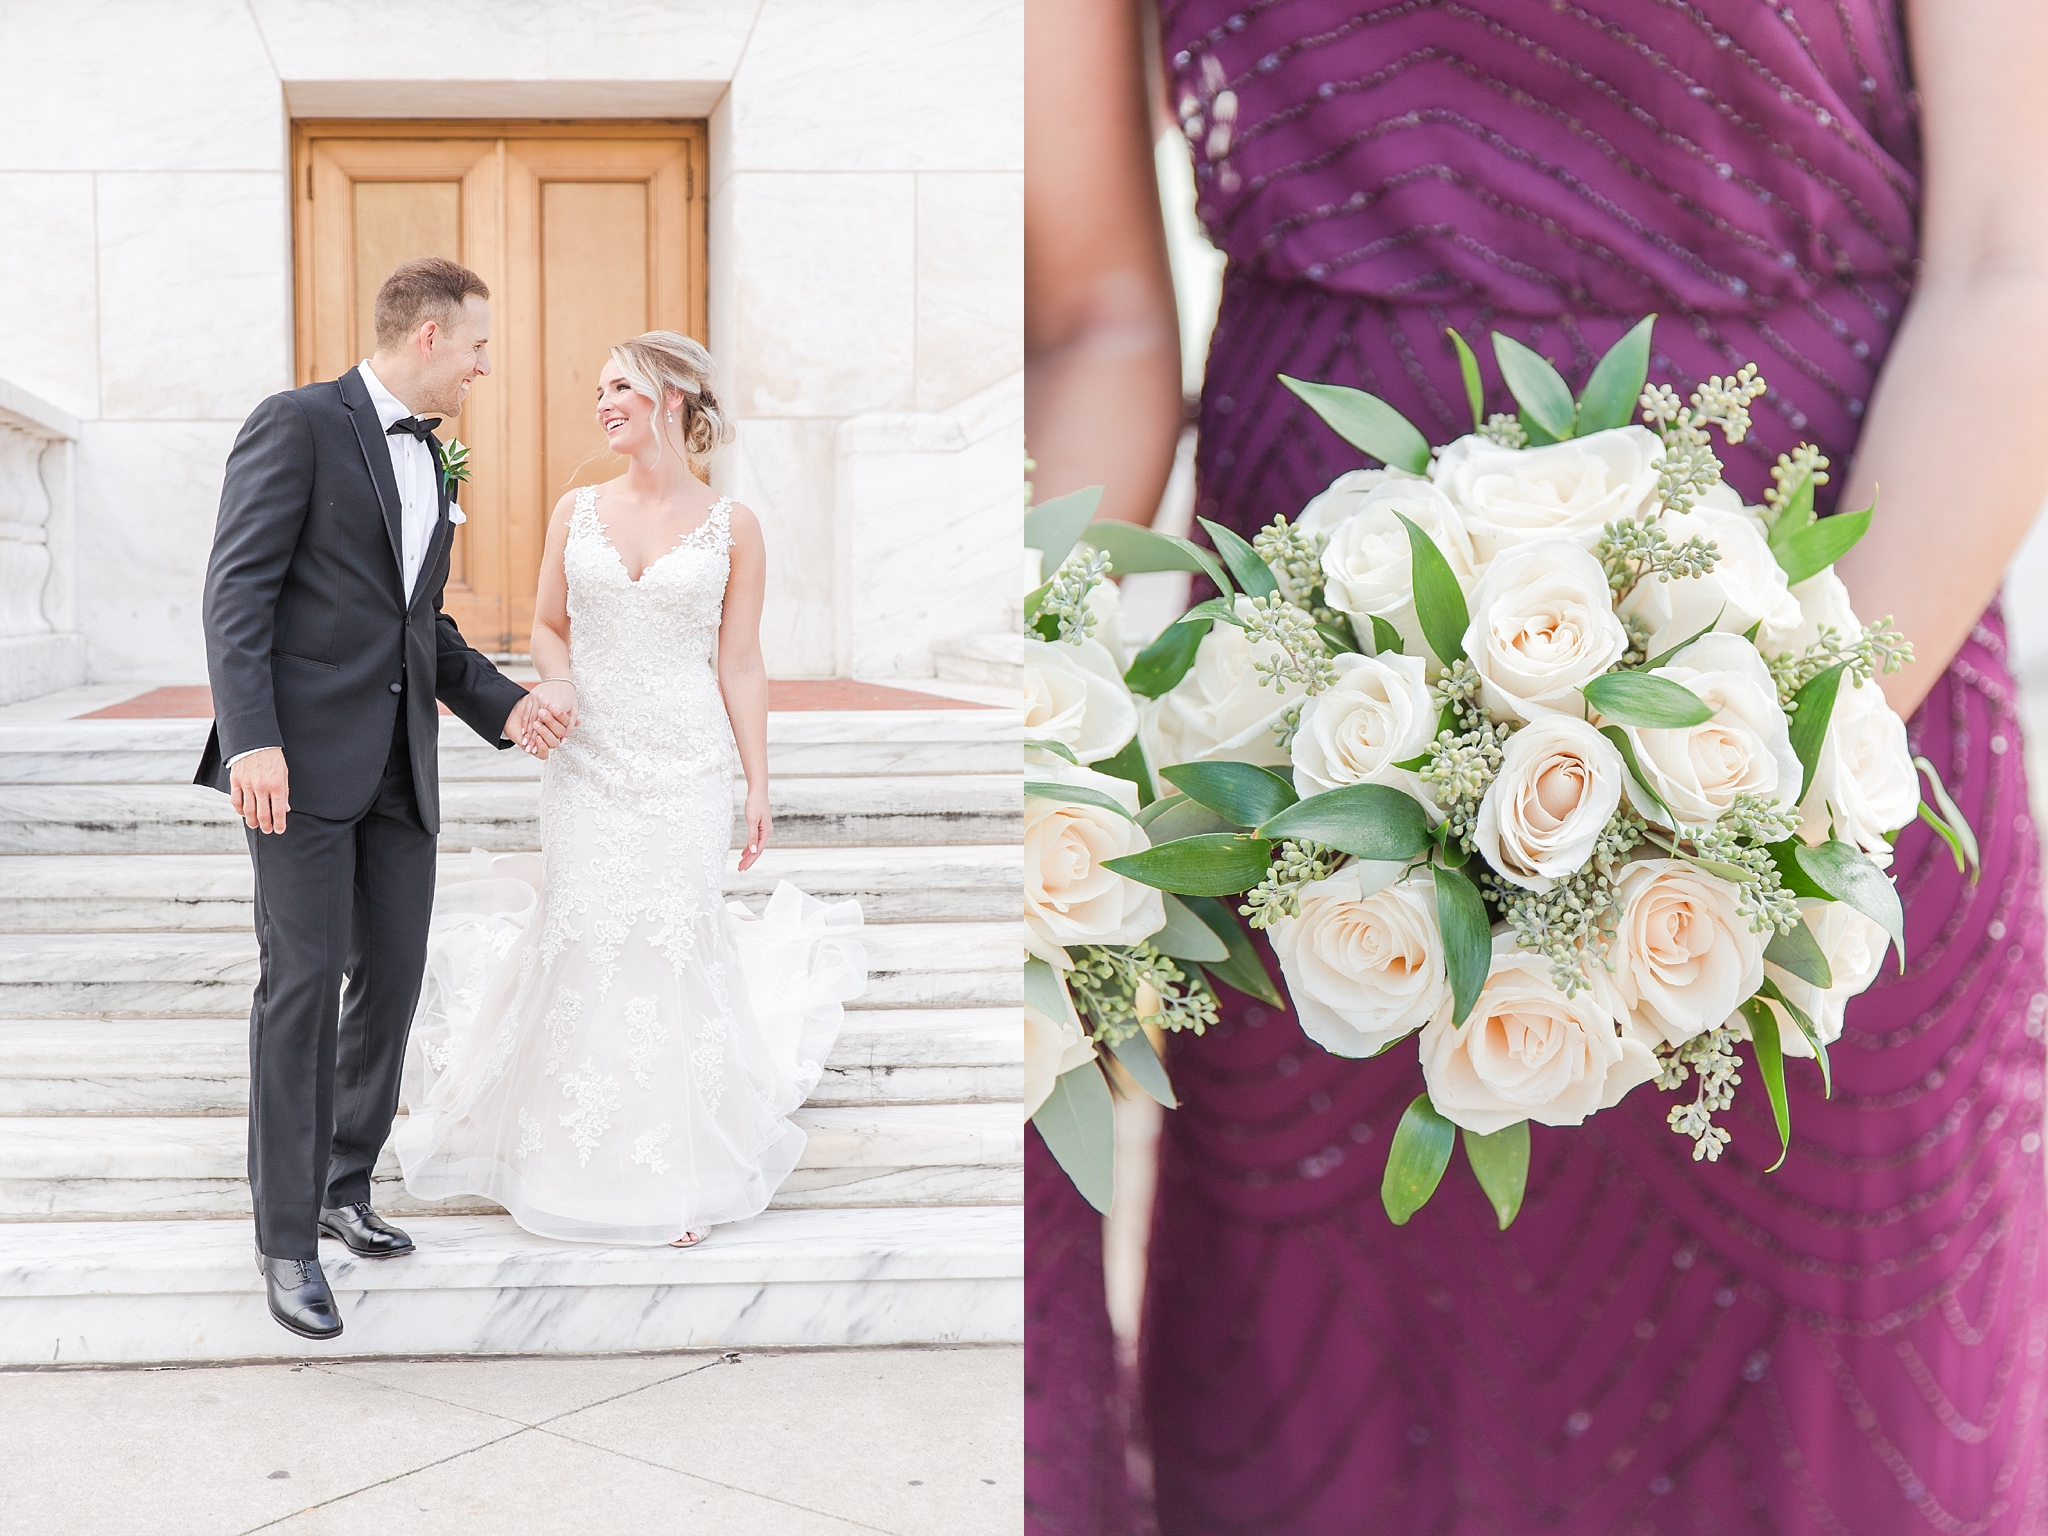 candid-romantic-wedding-photos-at-the-masonic-temple-belle-isle-detroit-institute-of-arts-in-detroit-michigan-by-courtney-carolyn-photography_0046.jpg